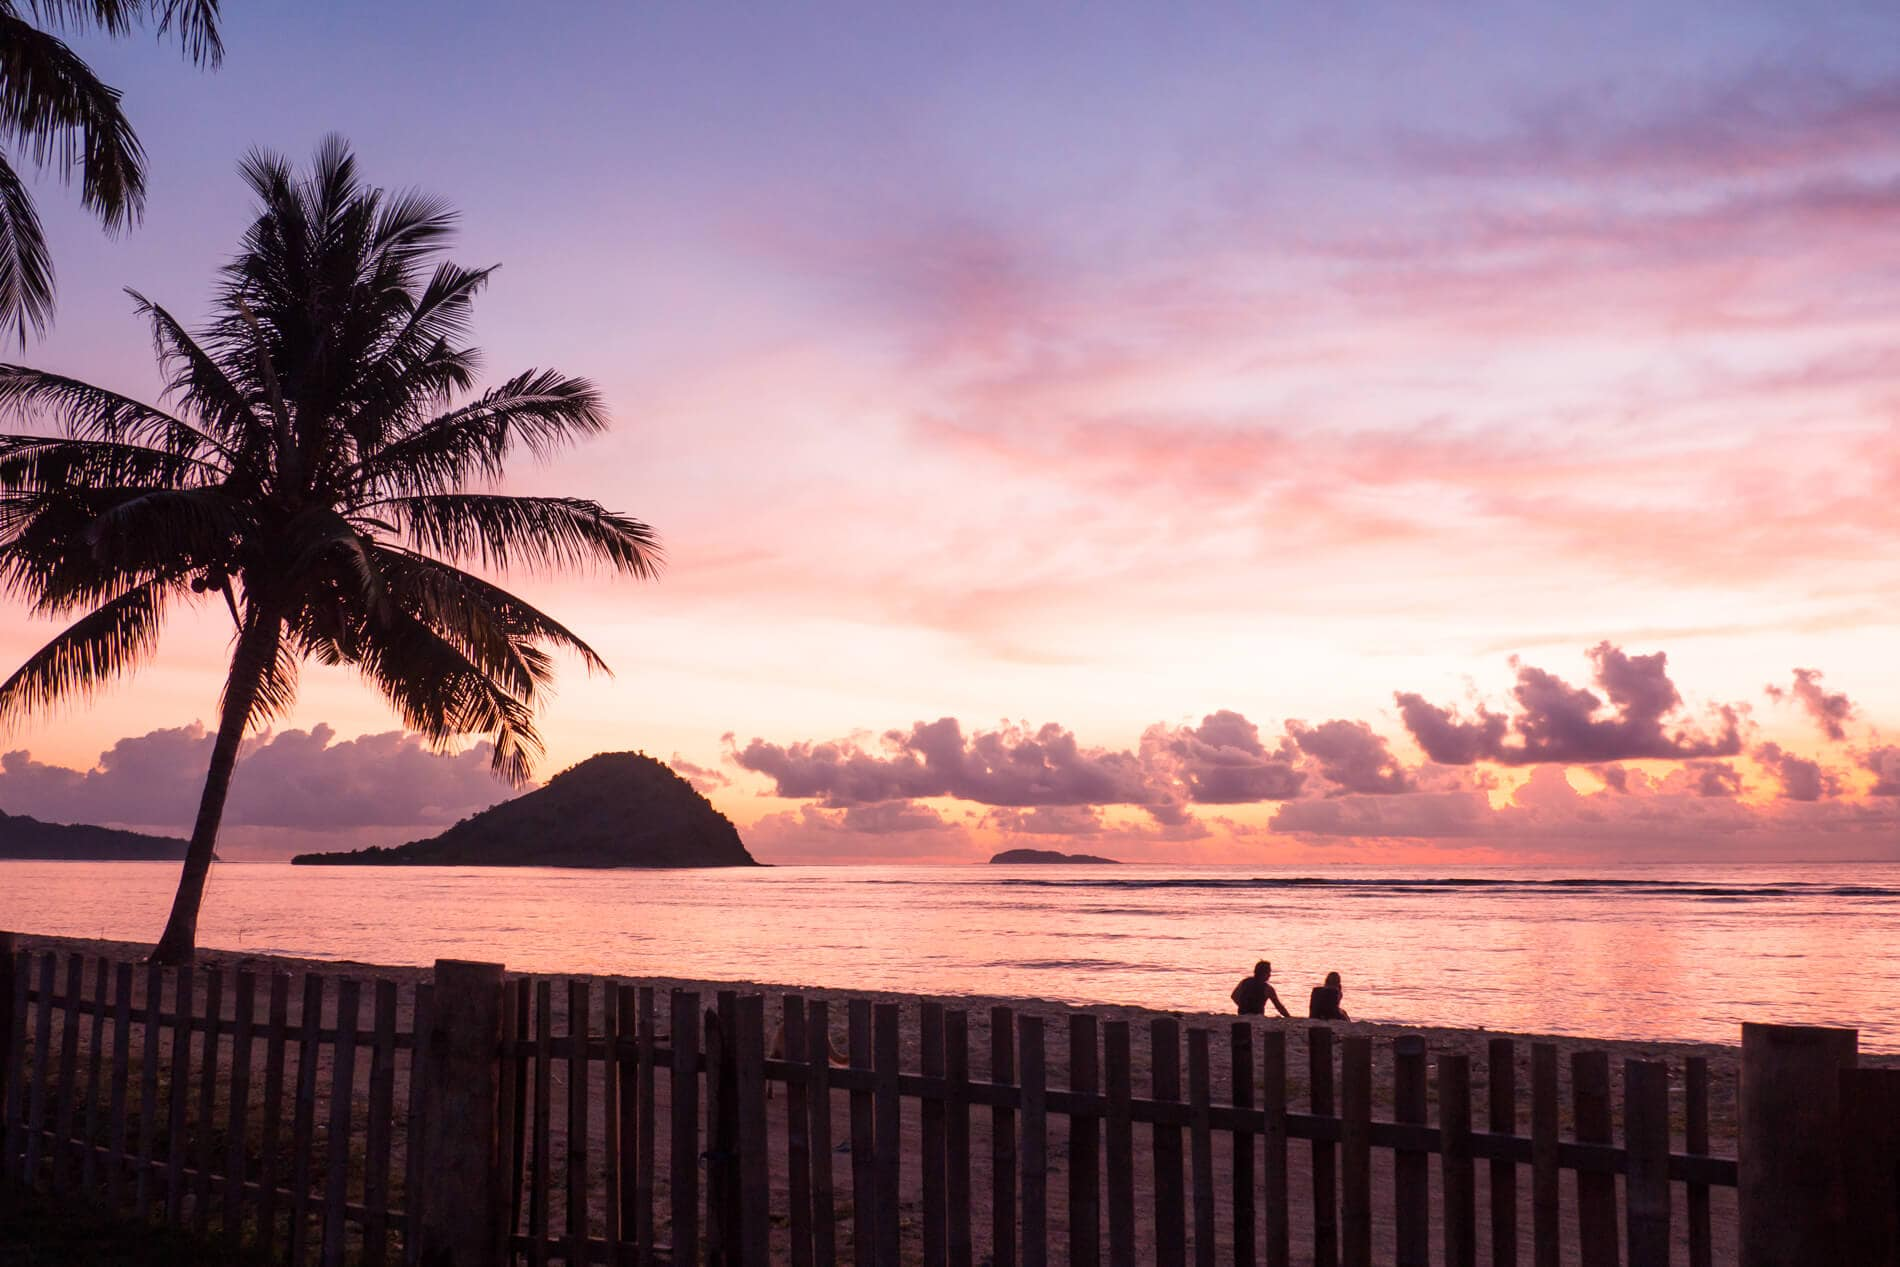 Sunset over Kertasari Beach outside Whales & Waves Resort in Sumbawa, Indonesia - The most amazing place I've ever been